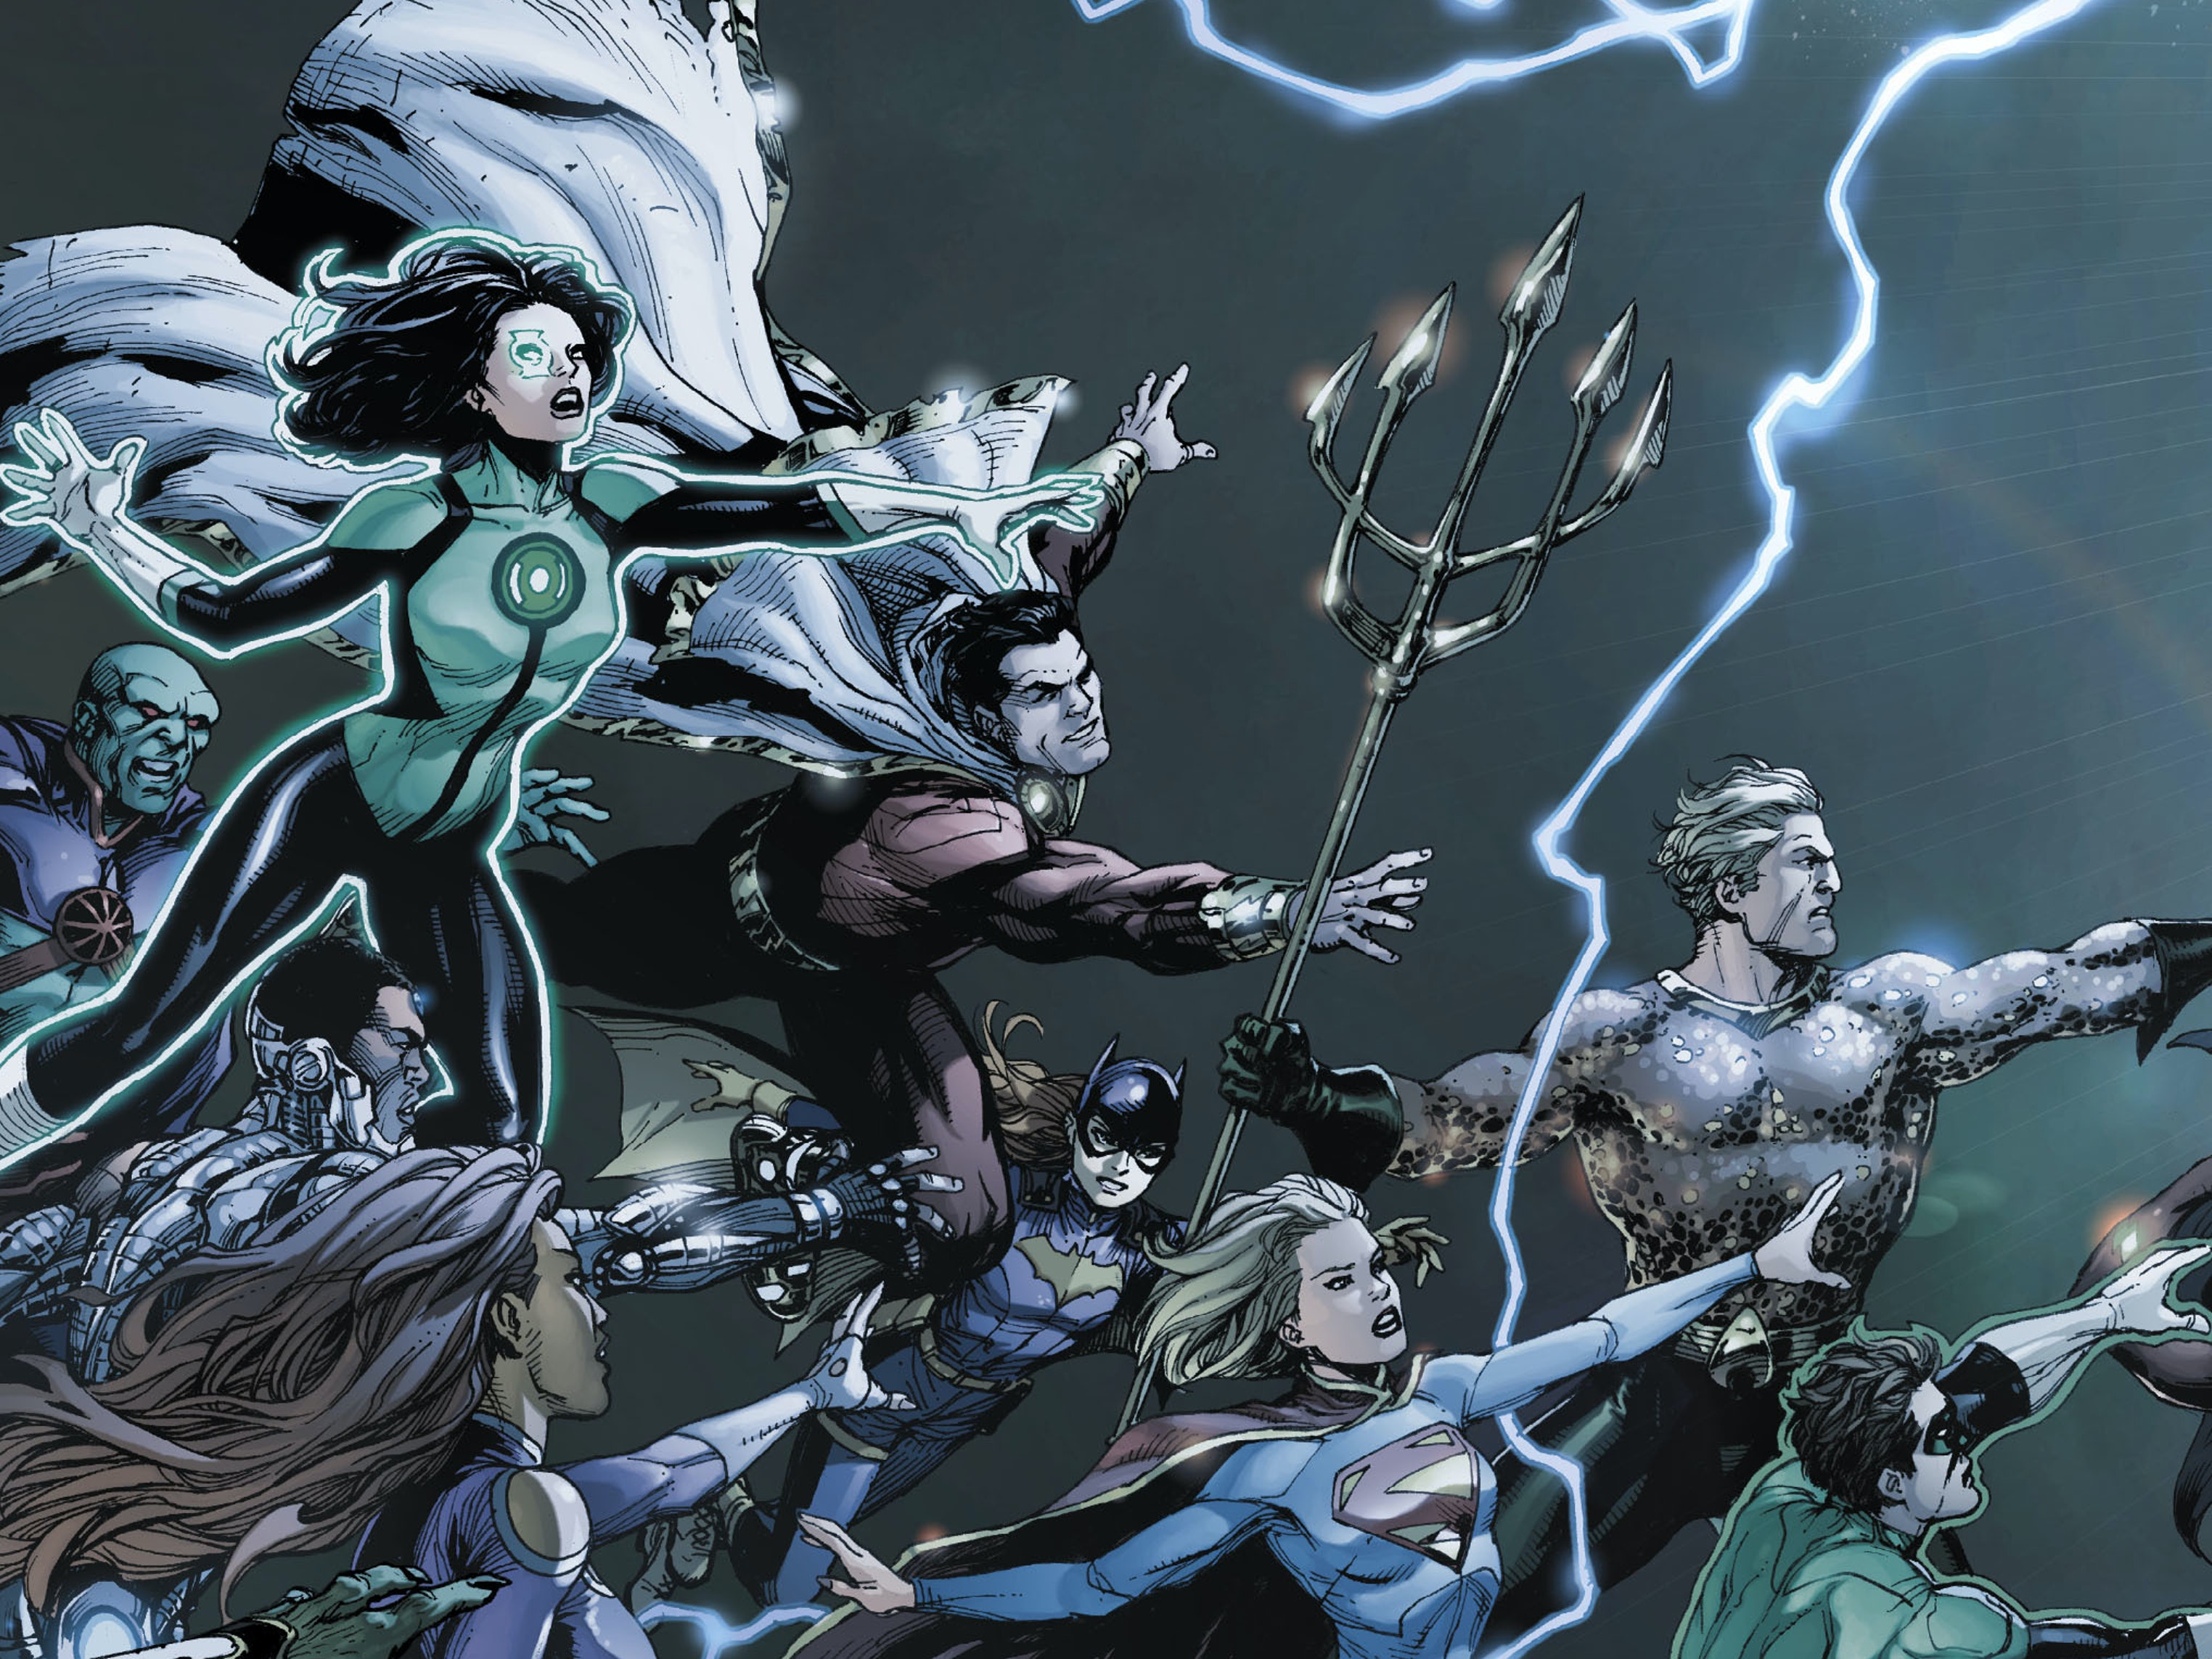 DC's First 'Rebirth' Comic Brings Back Lost Heroes